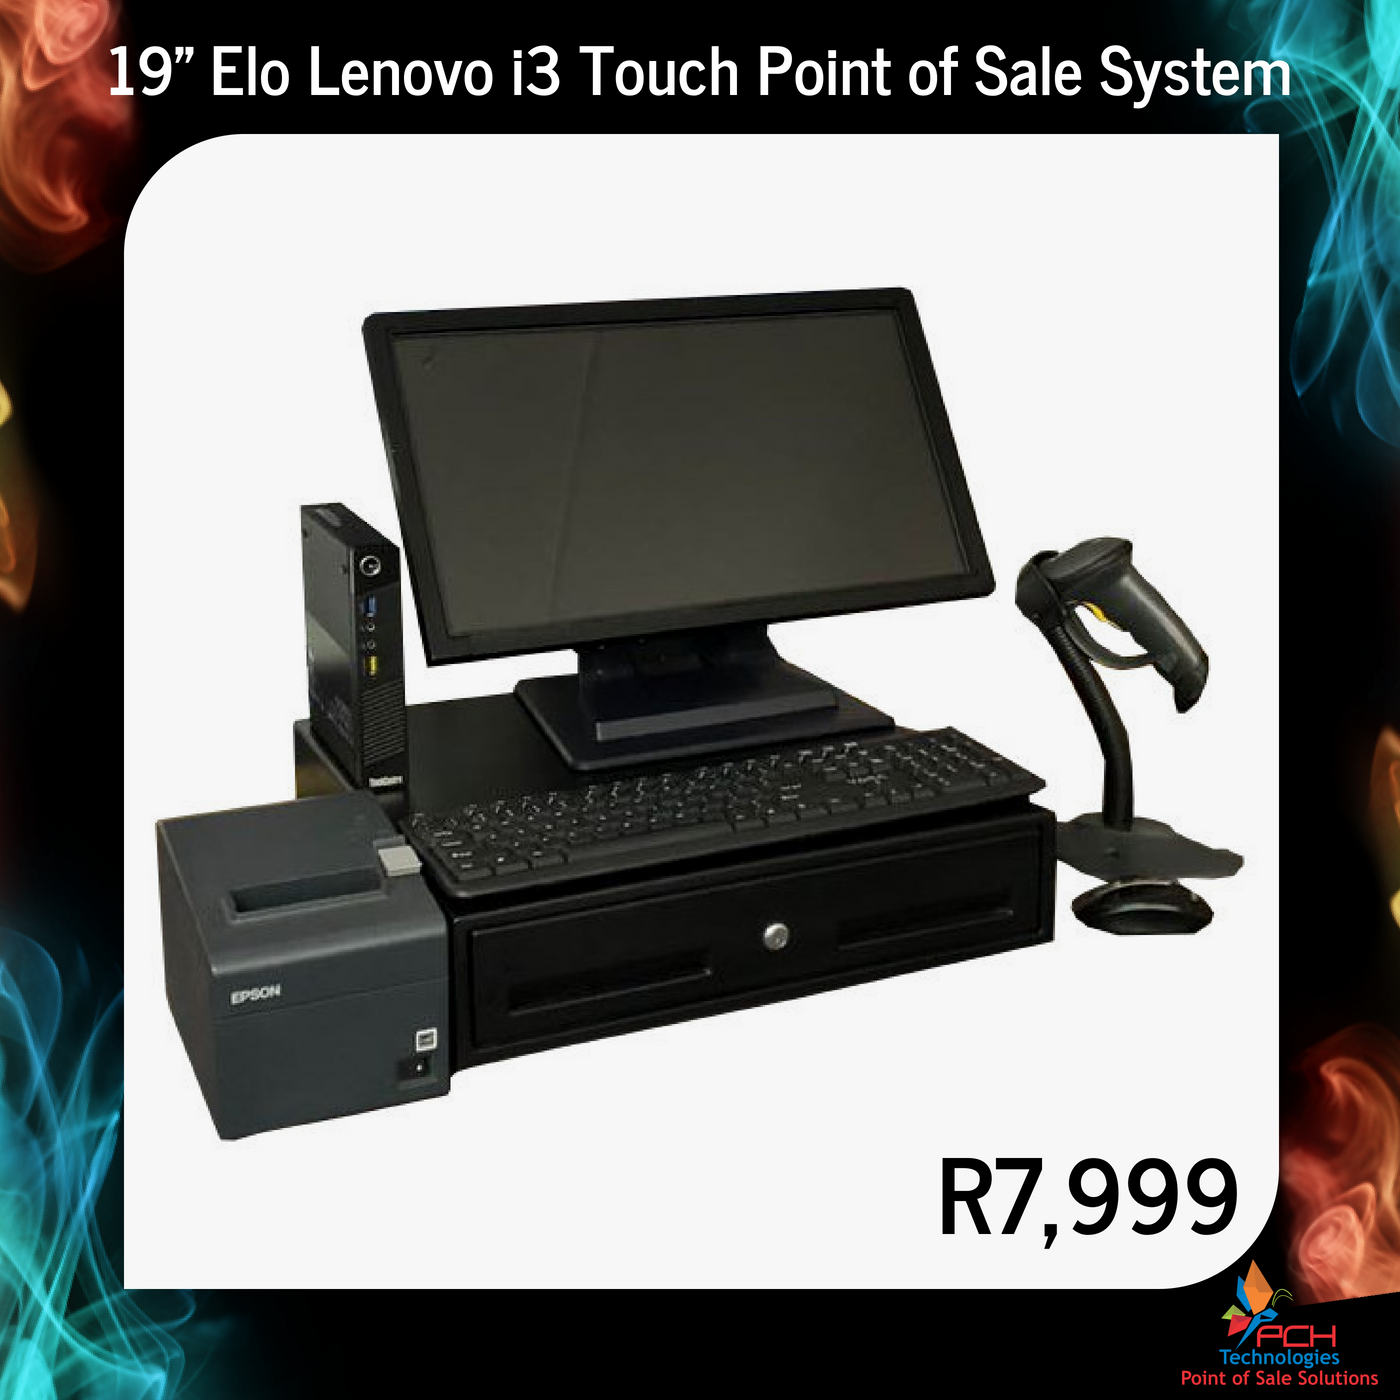 """19"""" Elo Lenovo i3 Touch Point of Sale System"""